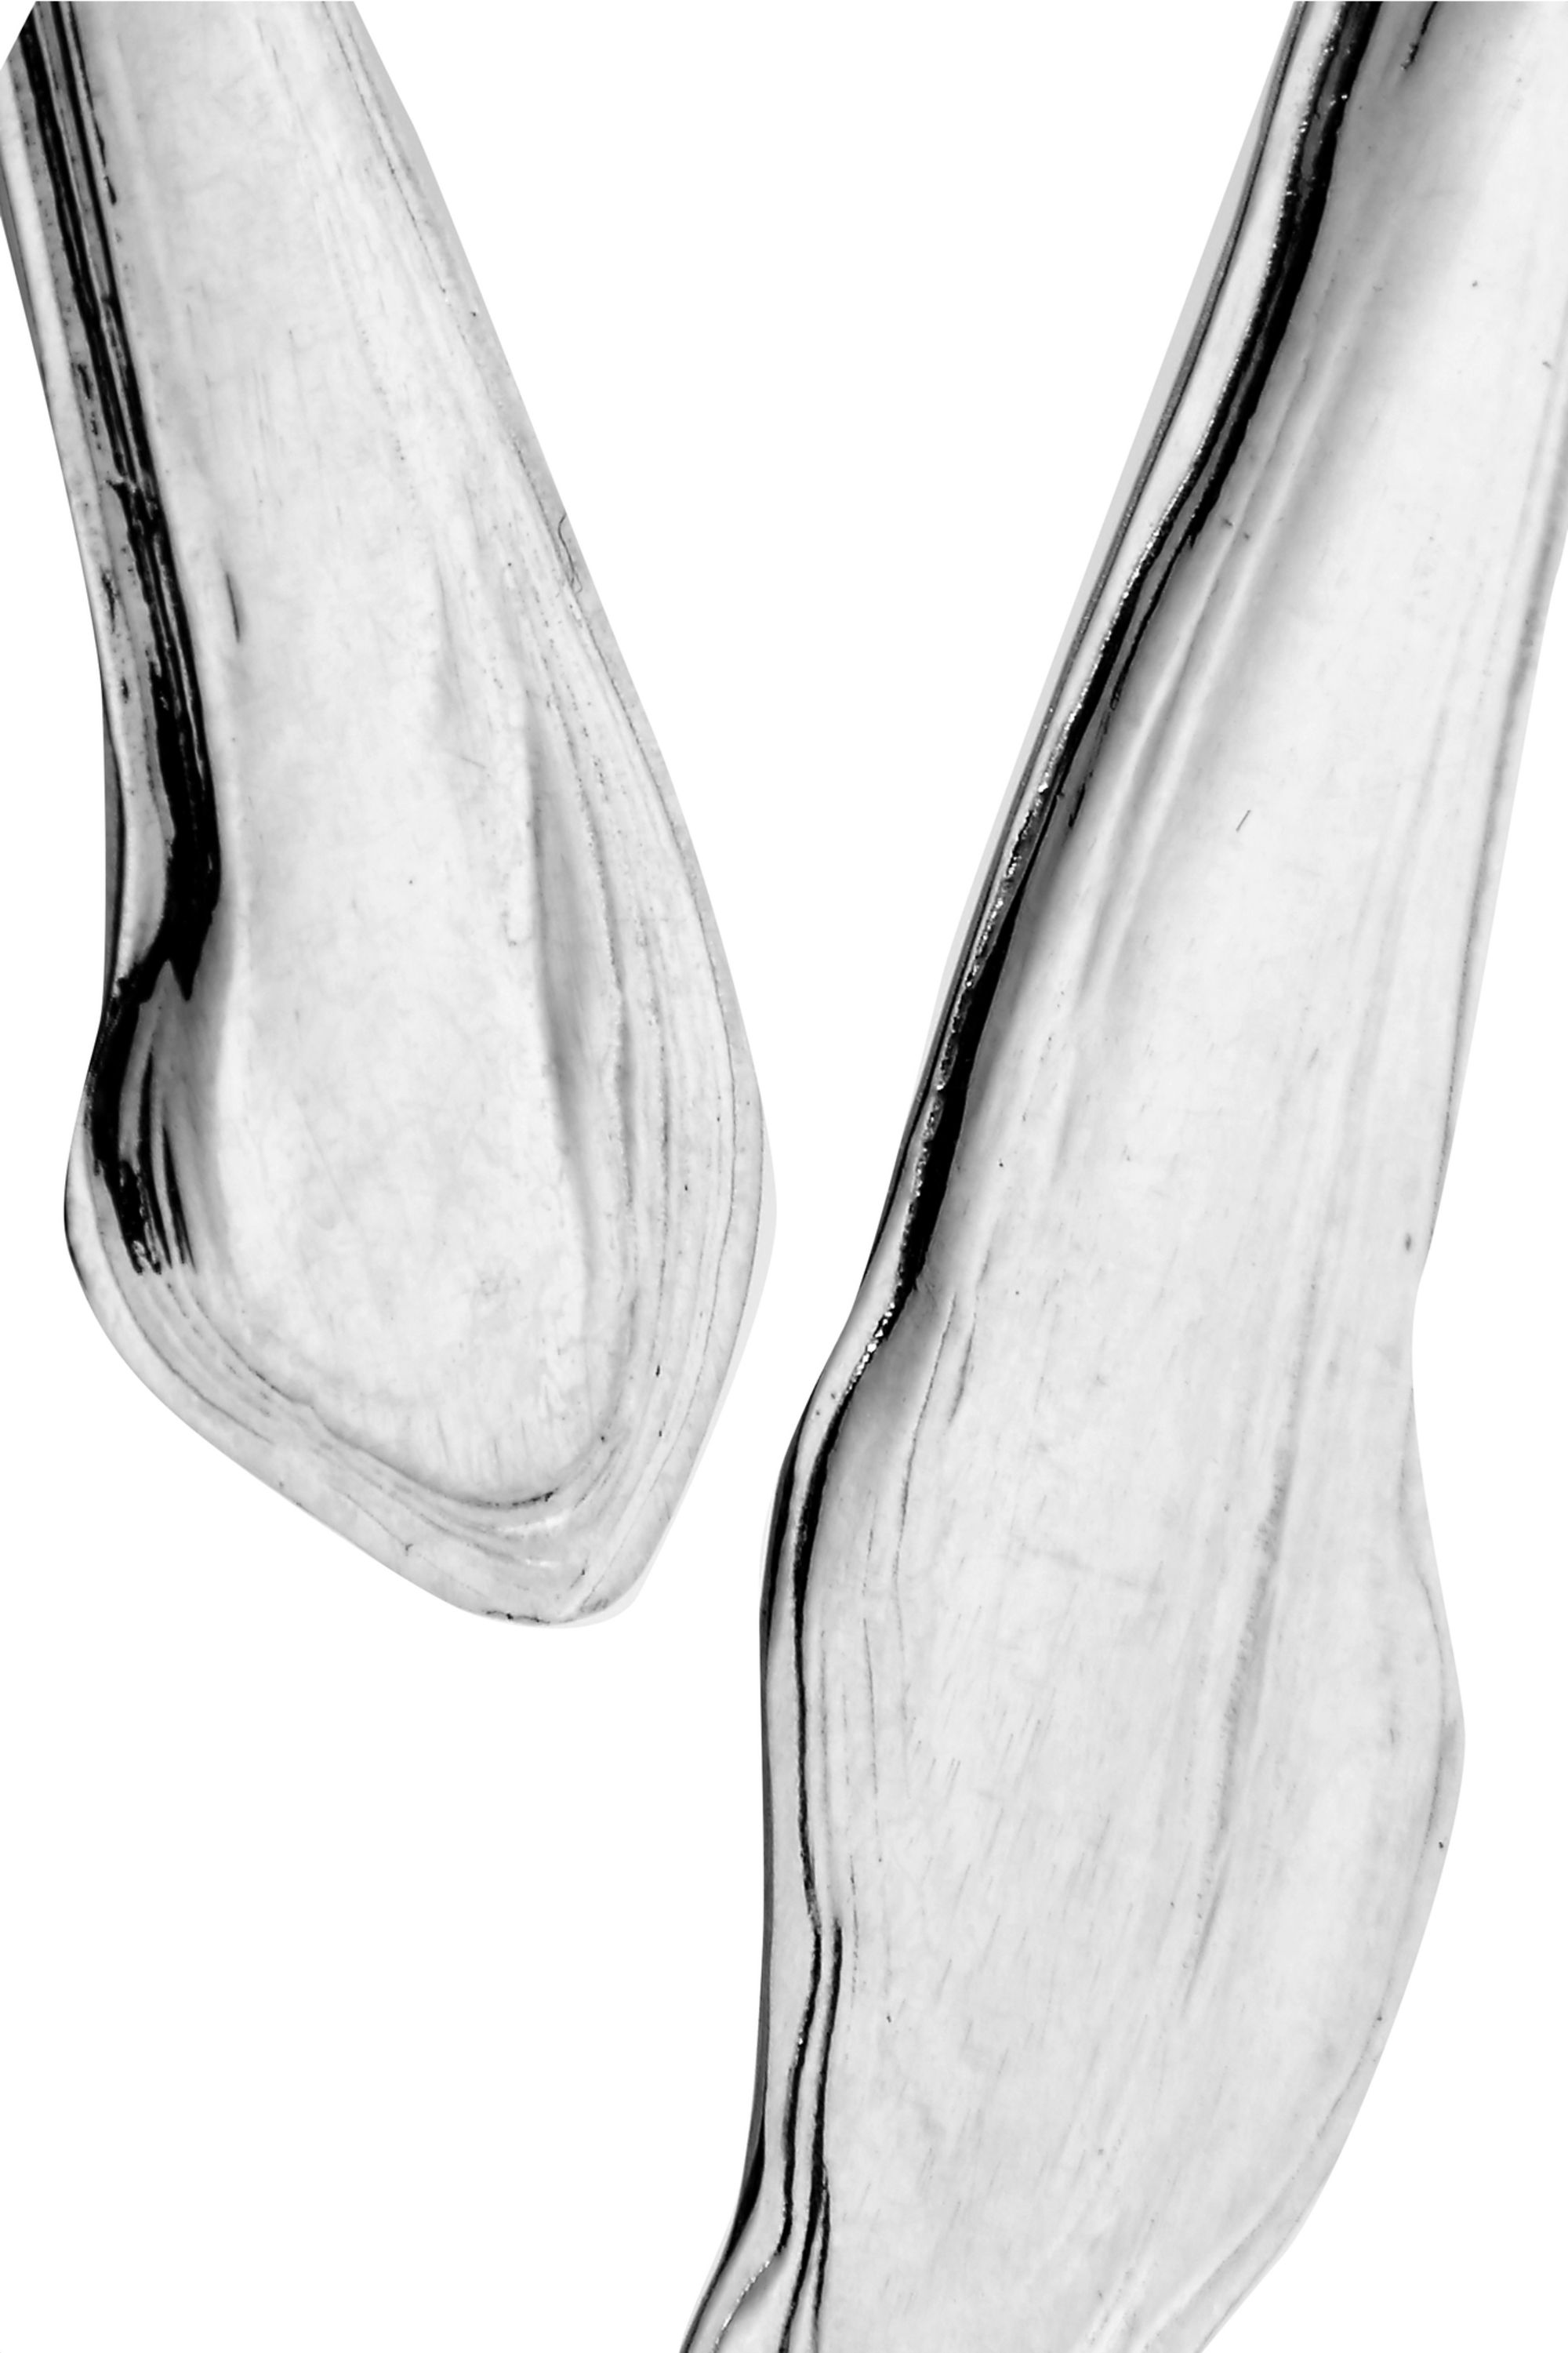 Leigh Miller Ebb And Flow silver earrings